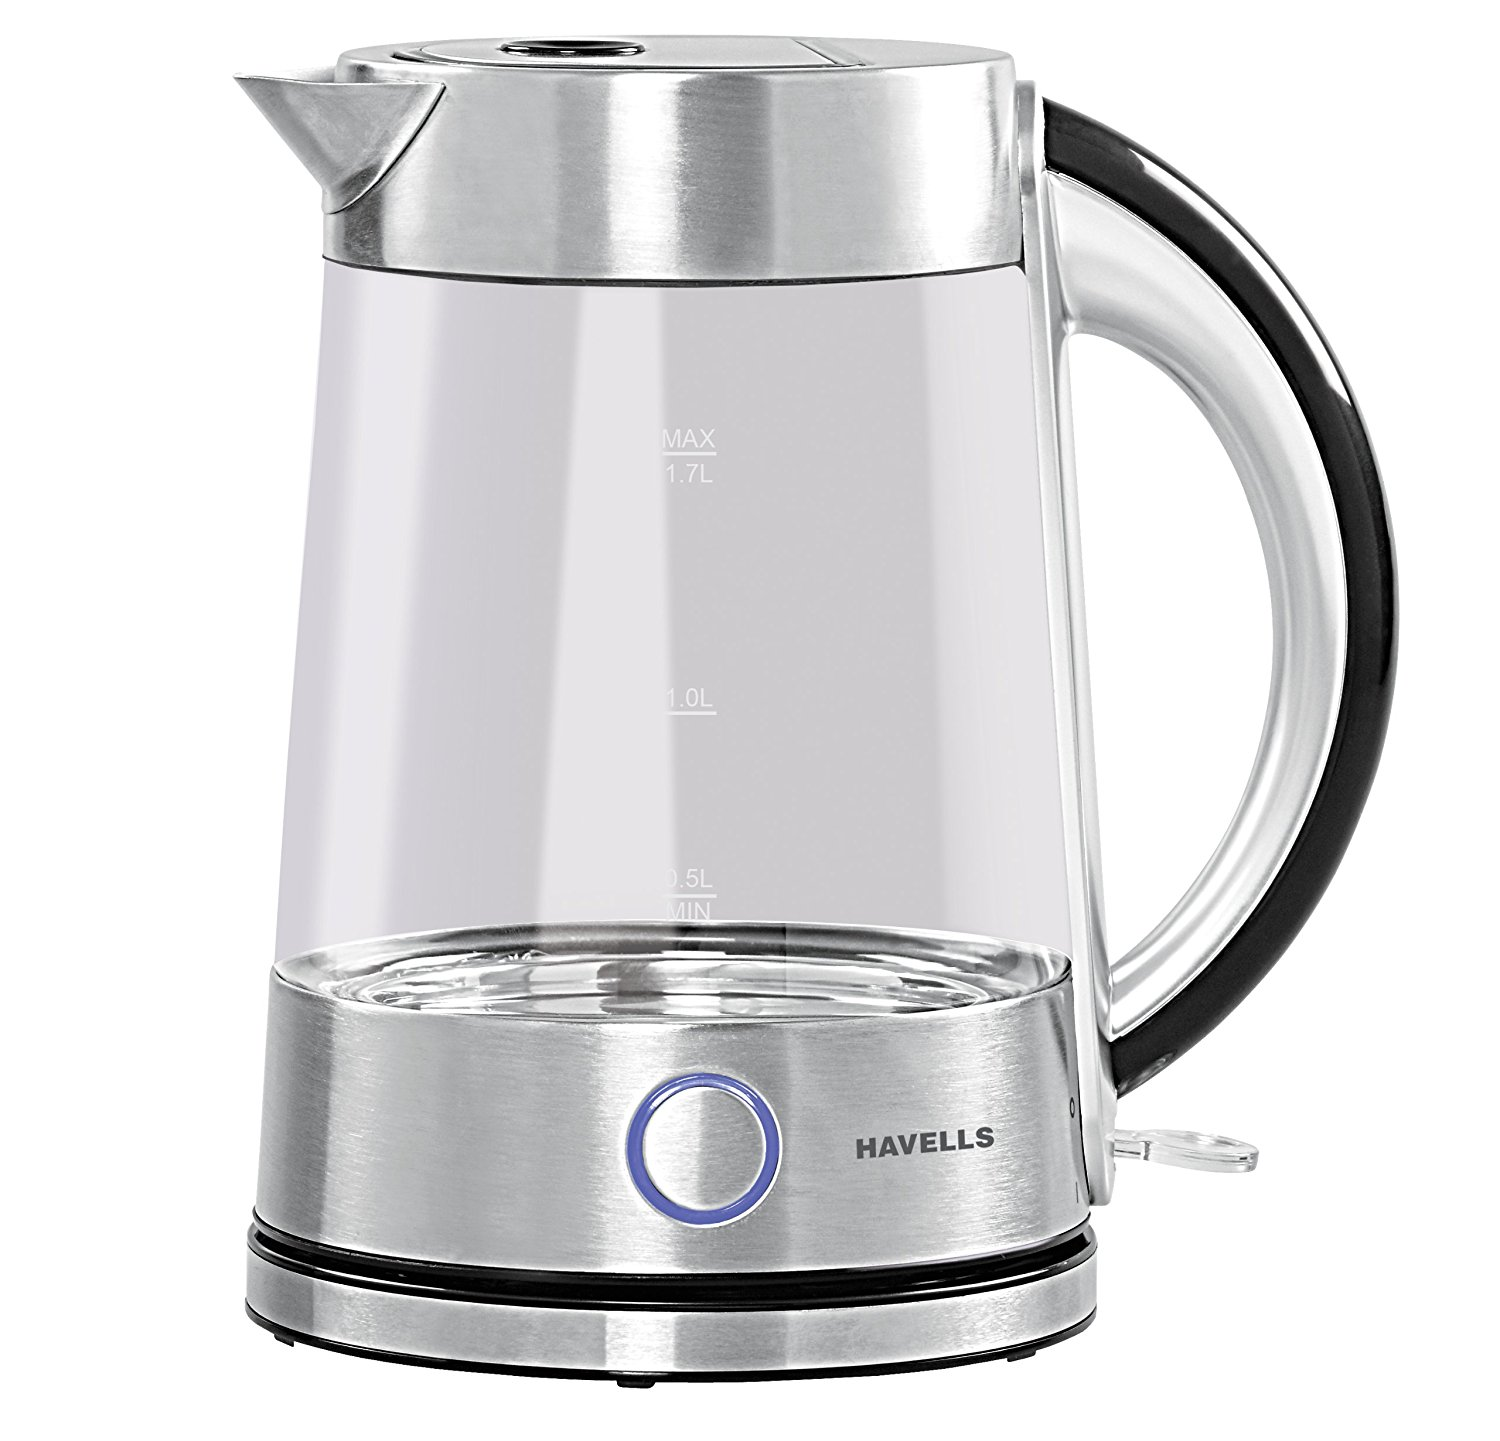 Havells Vetro 17l 2200 Watt Stainless Steel Kettle Glass Wiring Zones Kitchen Electric